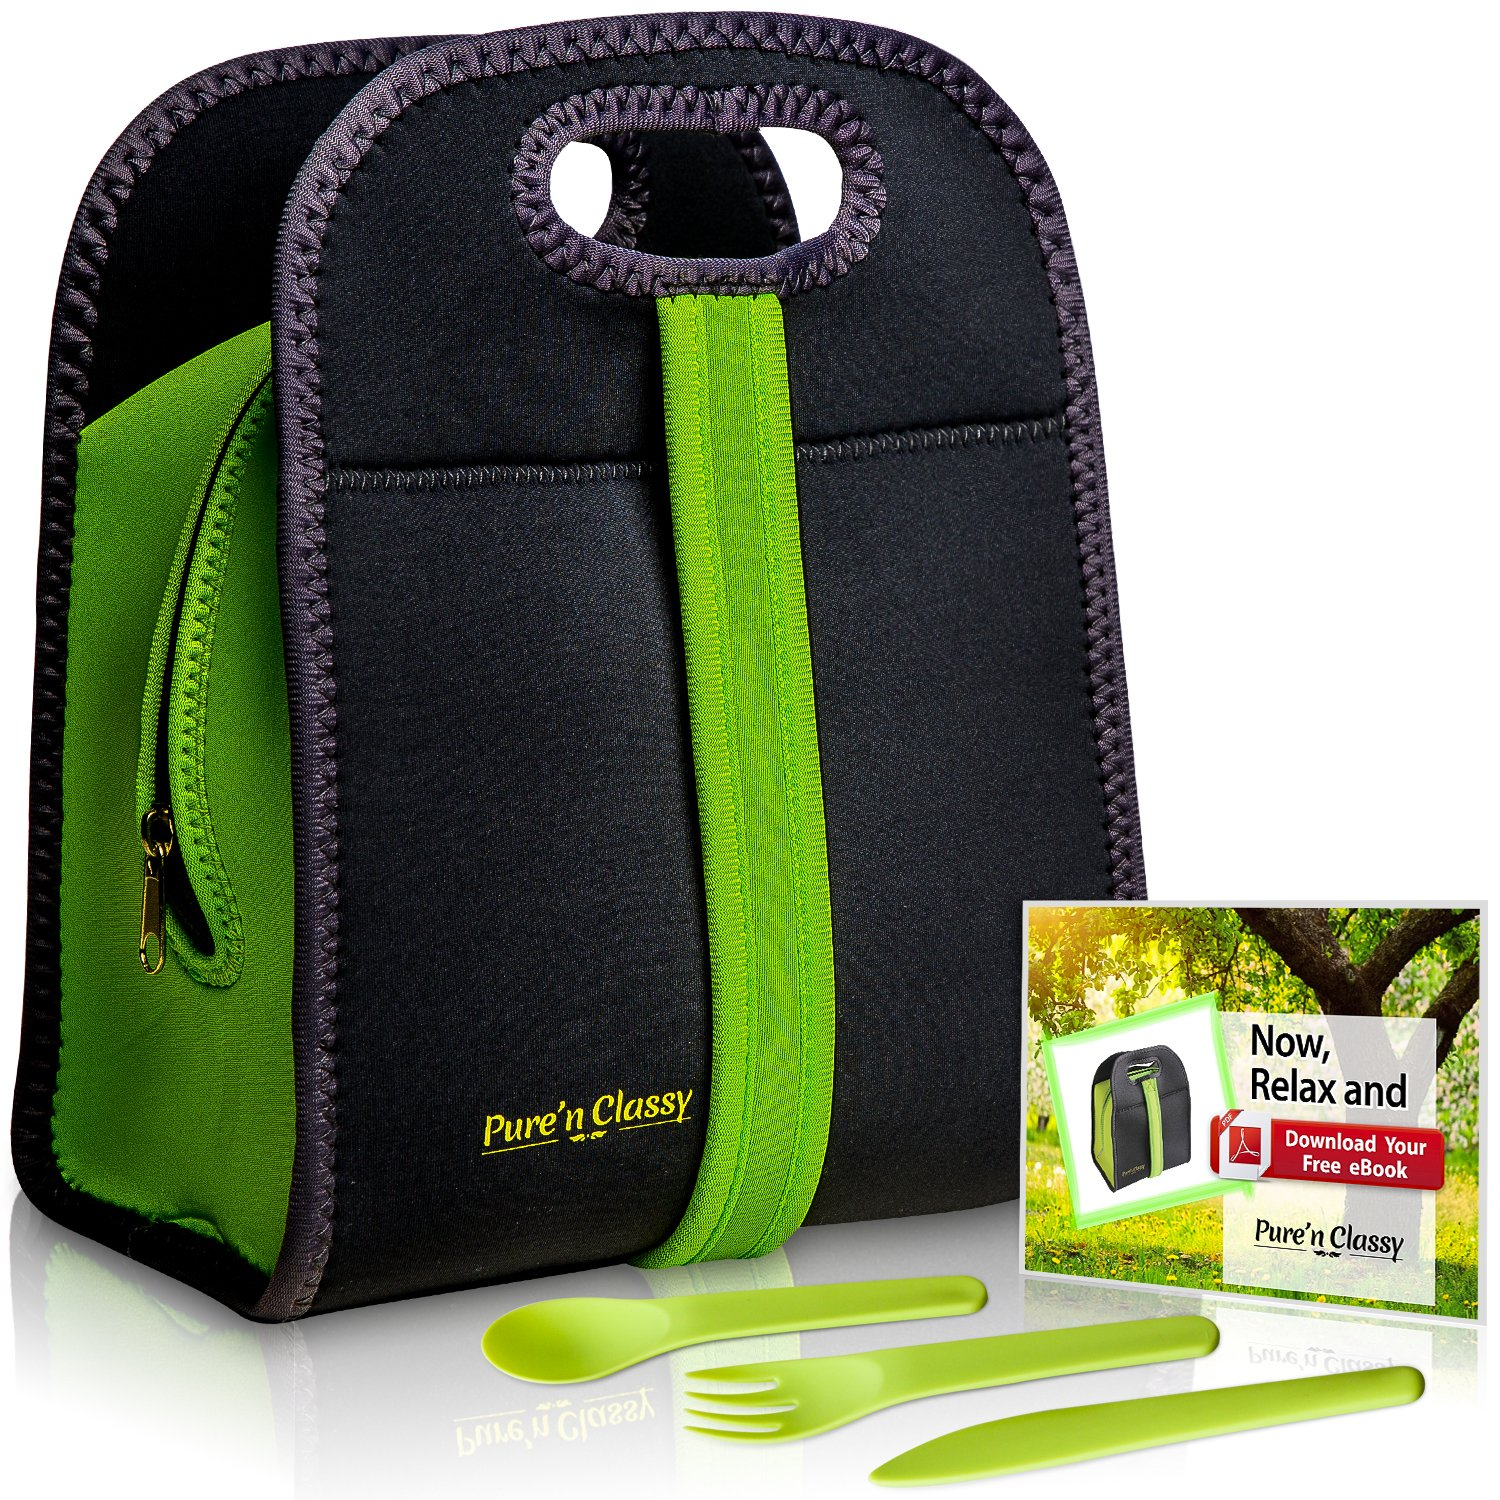 Neoprene Lunch Bag For Women, Kids, Men & Cutlery Set Bundle - Premium Eco Friendly Insulated Lunch Tote - Washable & Reusable Fashionable Lunch Bag - 100 of America's Favorite Sandwiches eBook Incl.